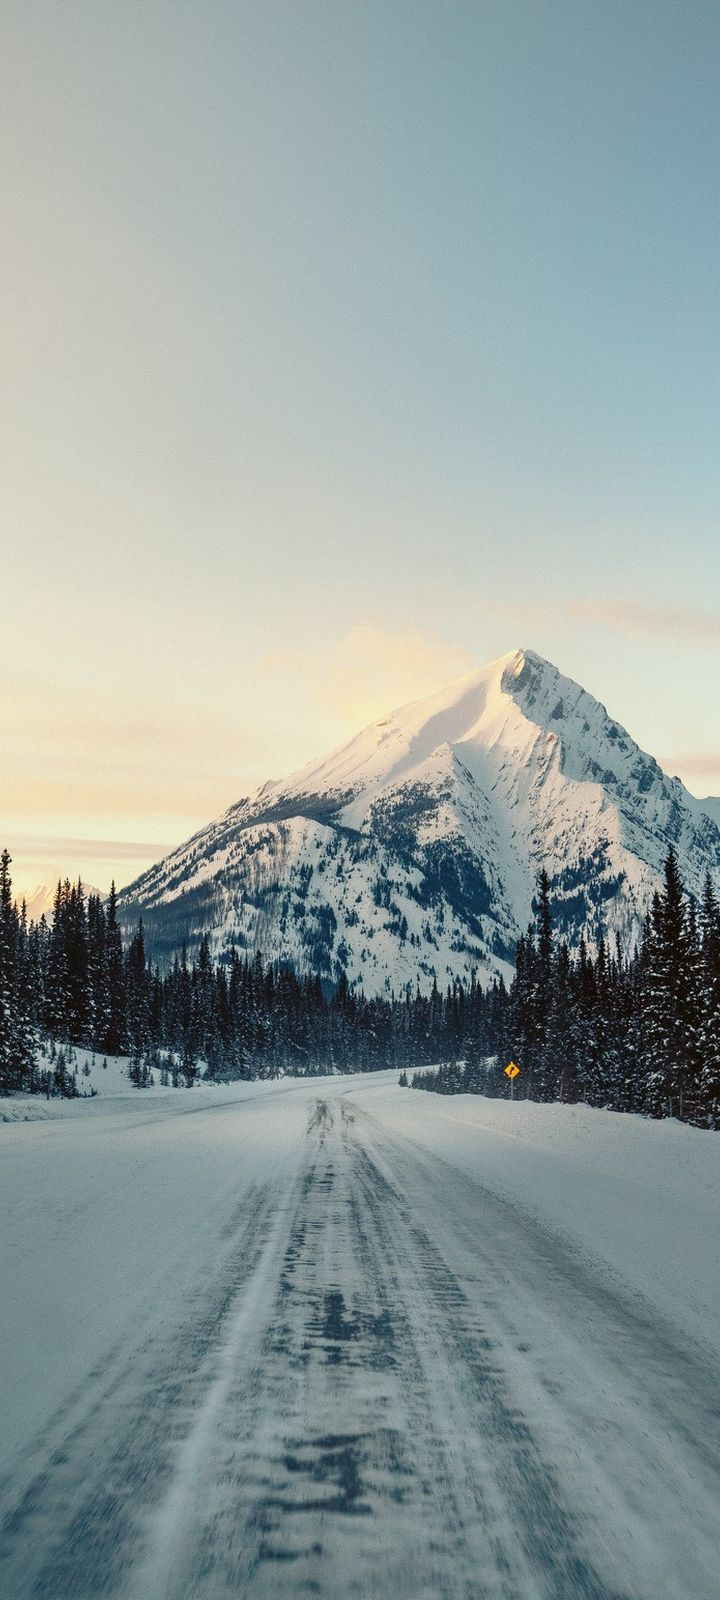 Mountain Road Snow Nature Wallpaper 720x1600